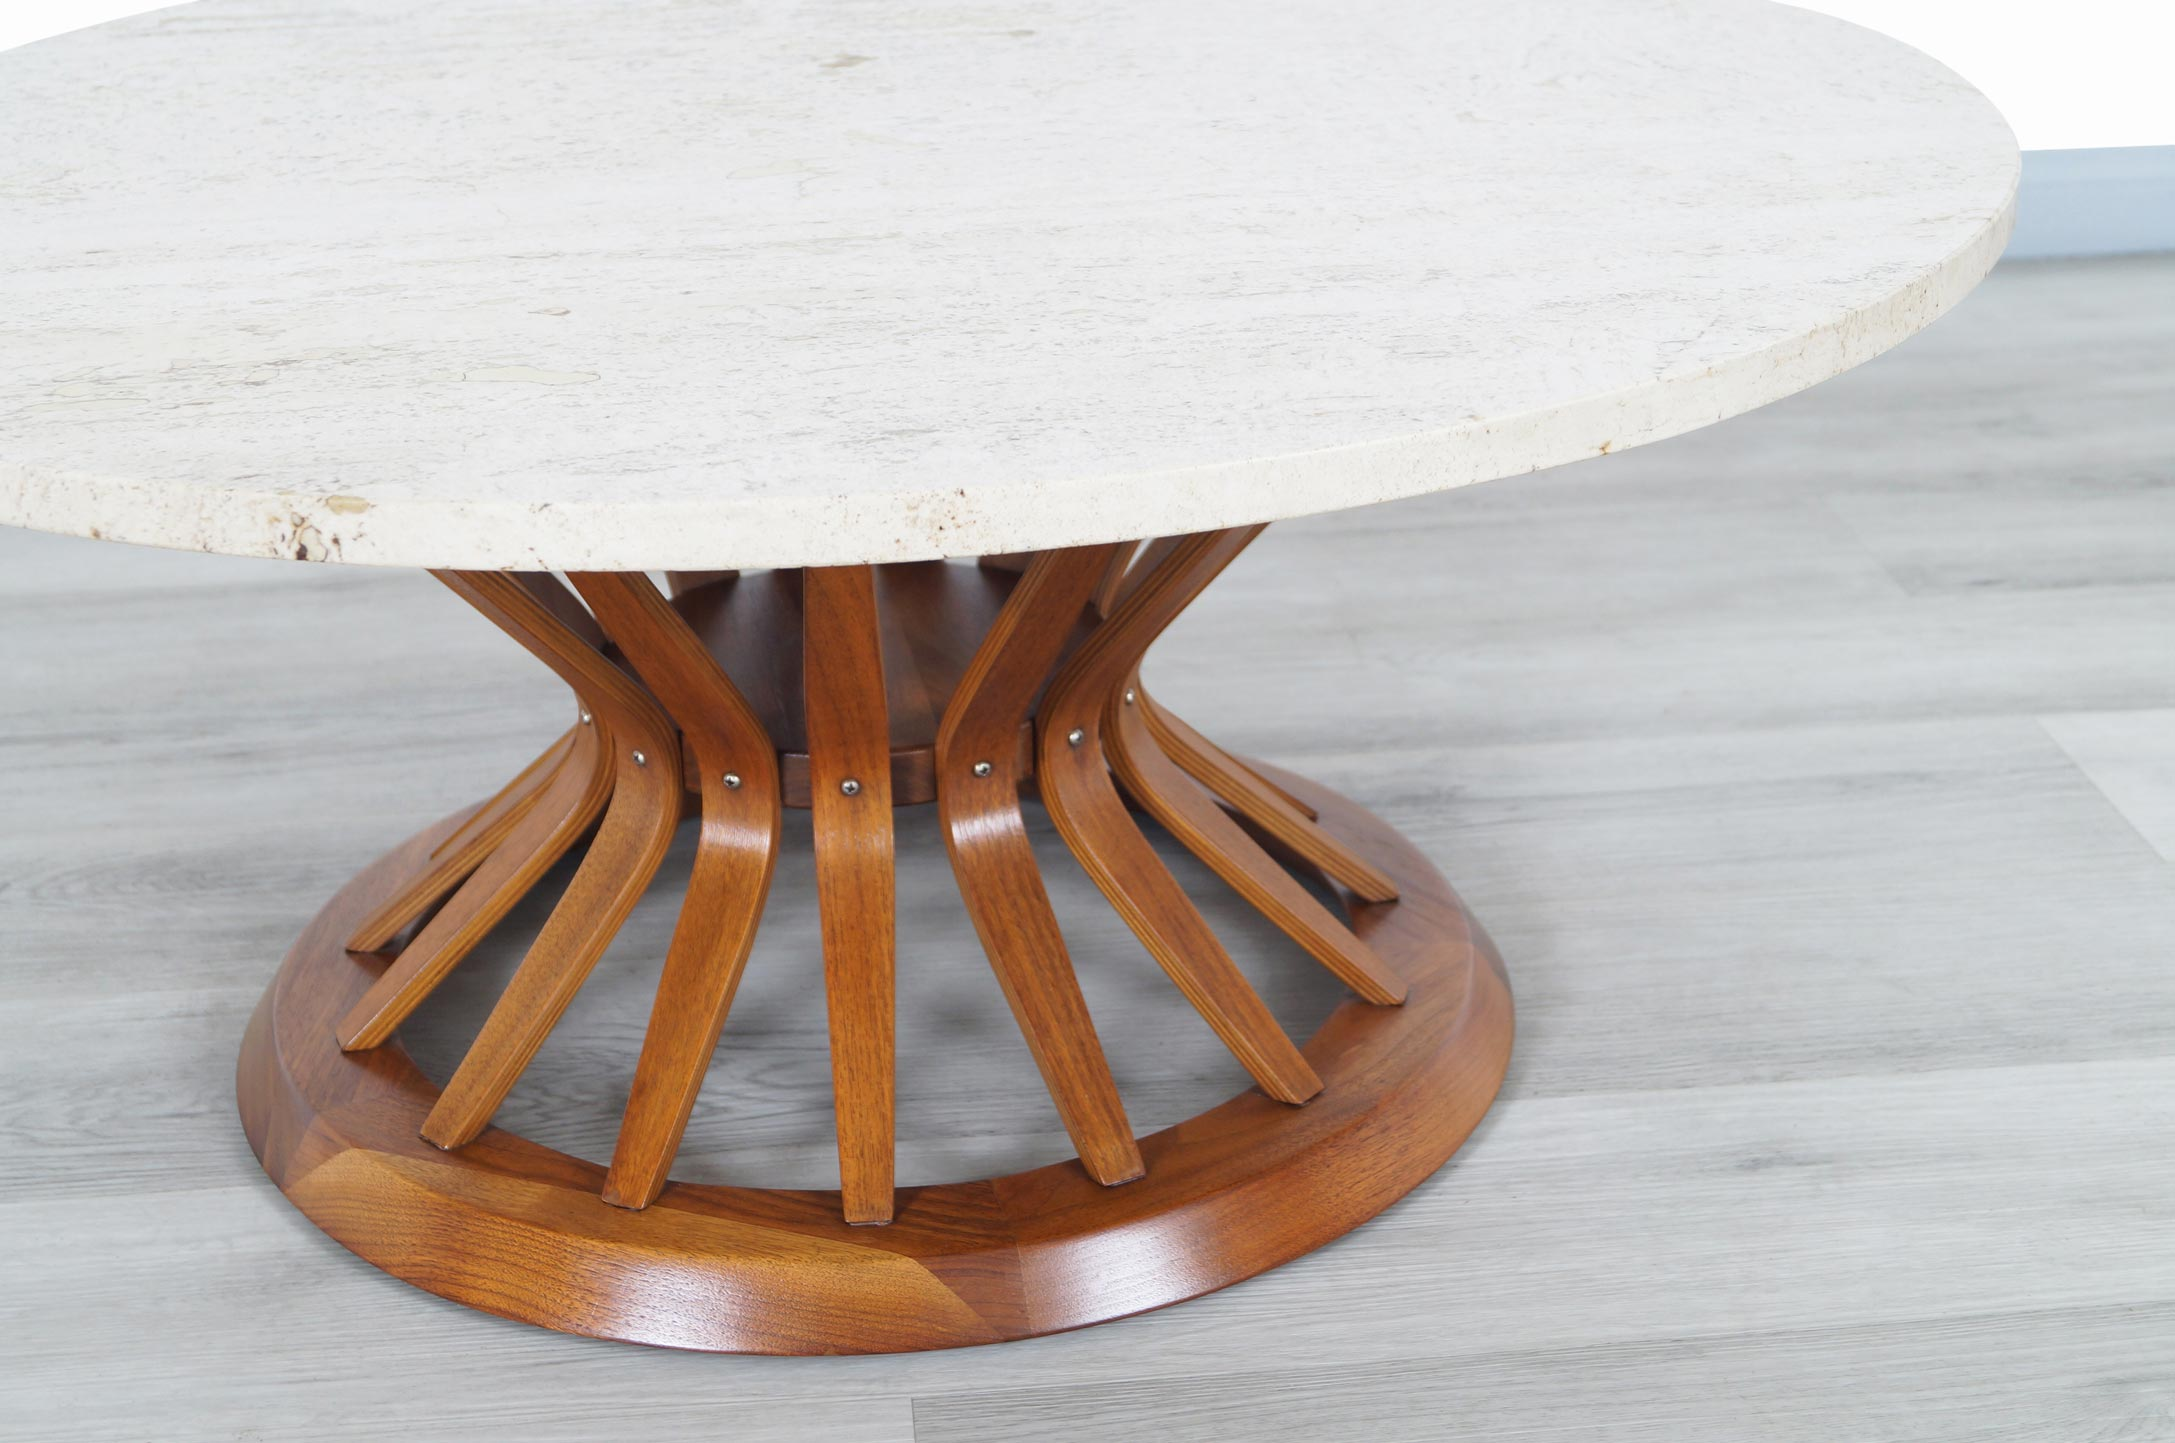 Vintage Travertine and Walnut Coffee Table by Edward Wormely for Dunbar